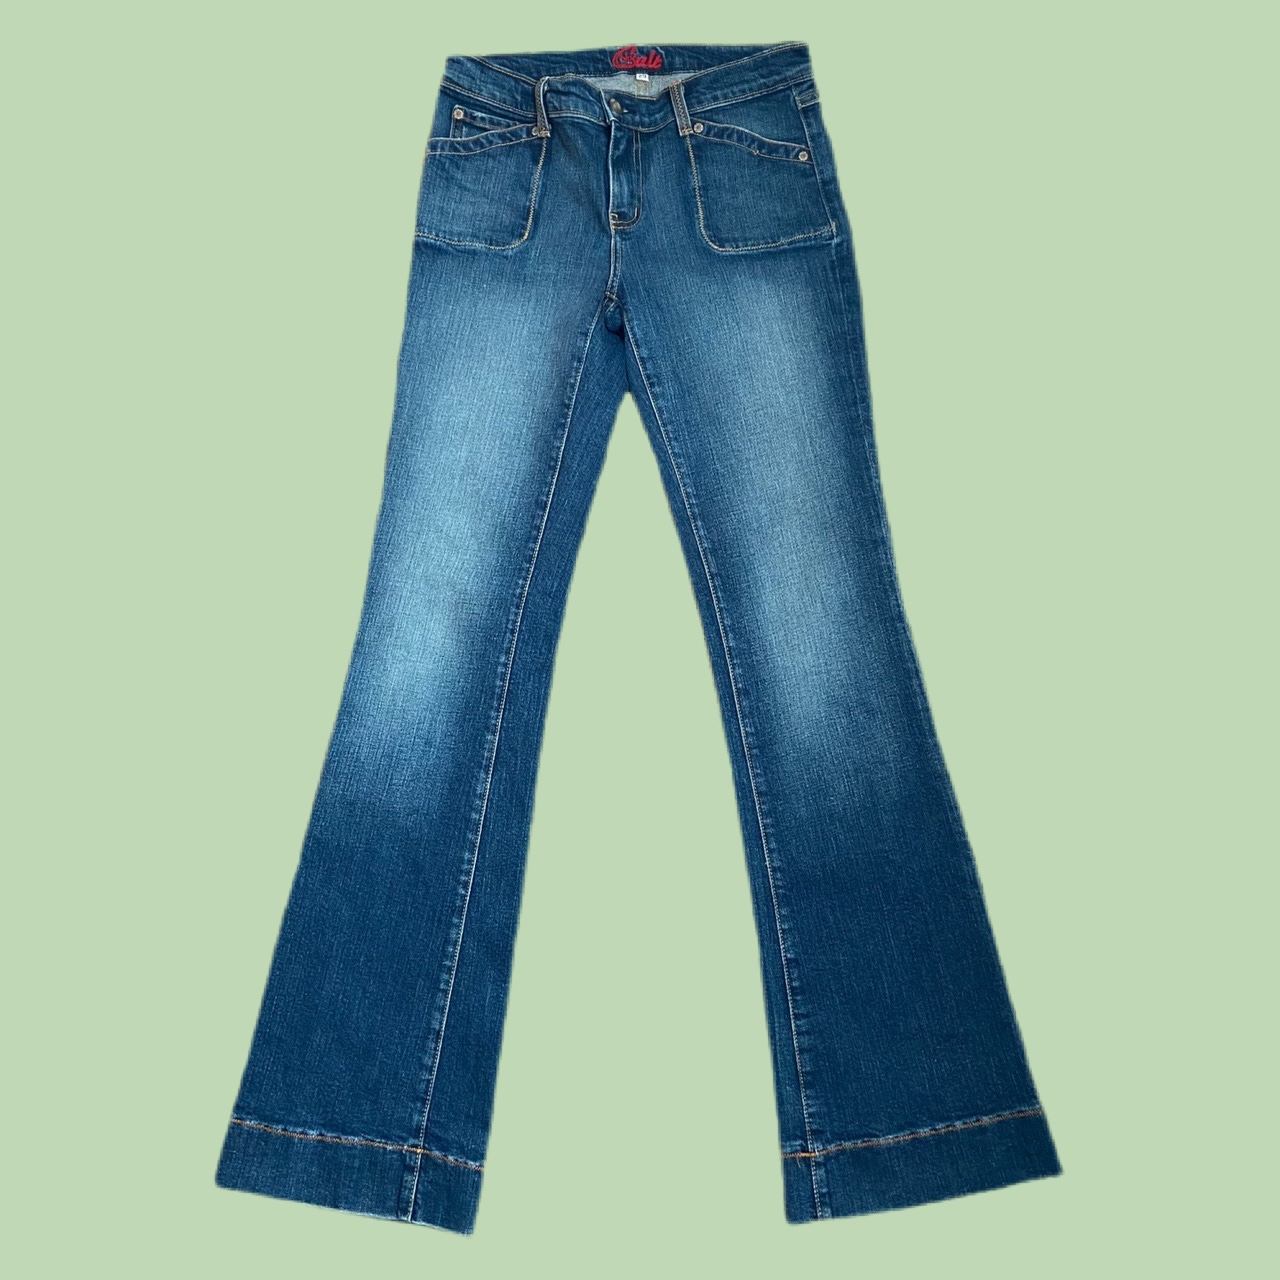 Product Image 1 - y2k low rise flare jeans women's